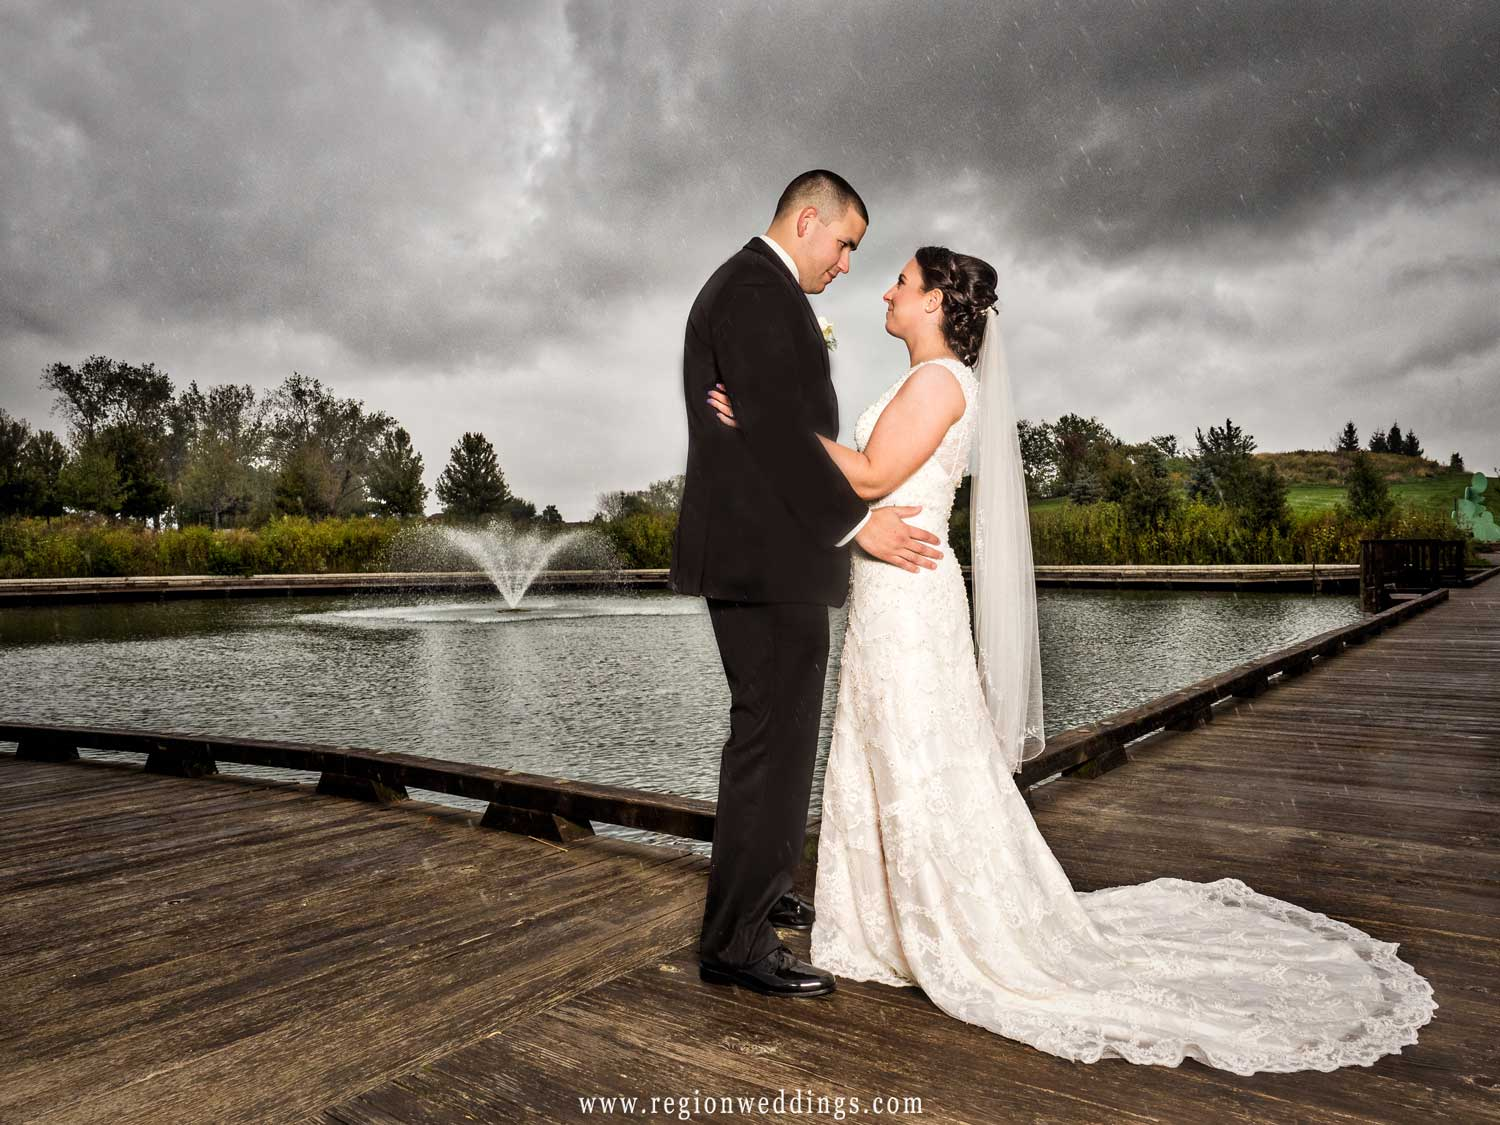 Rain falls upon the bride and groom at the Centennial Park fountain.